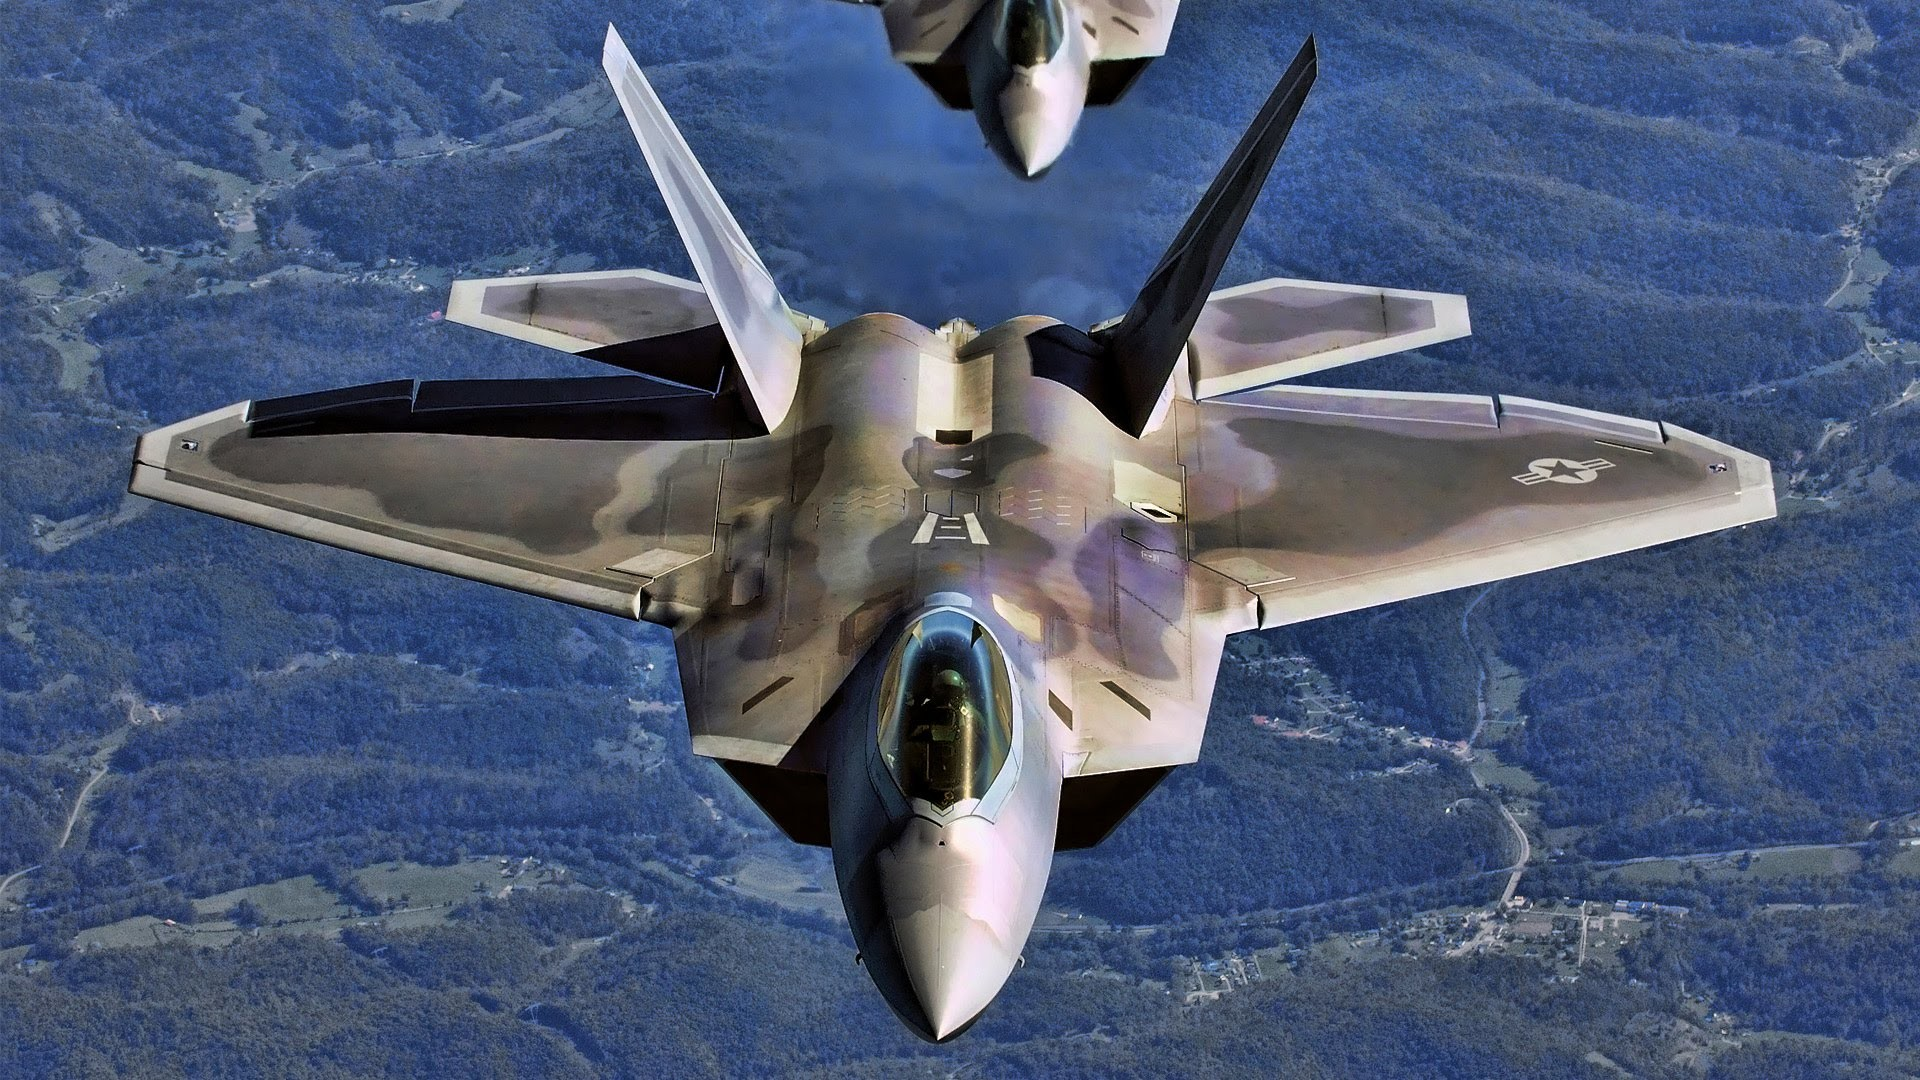 1920x1080 usa f-22 combat fighter best wallpapers |